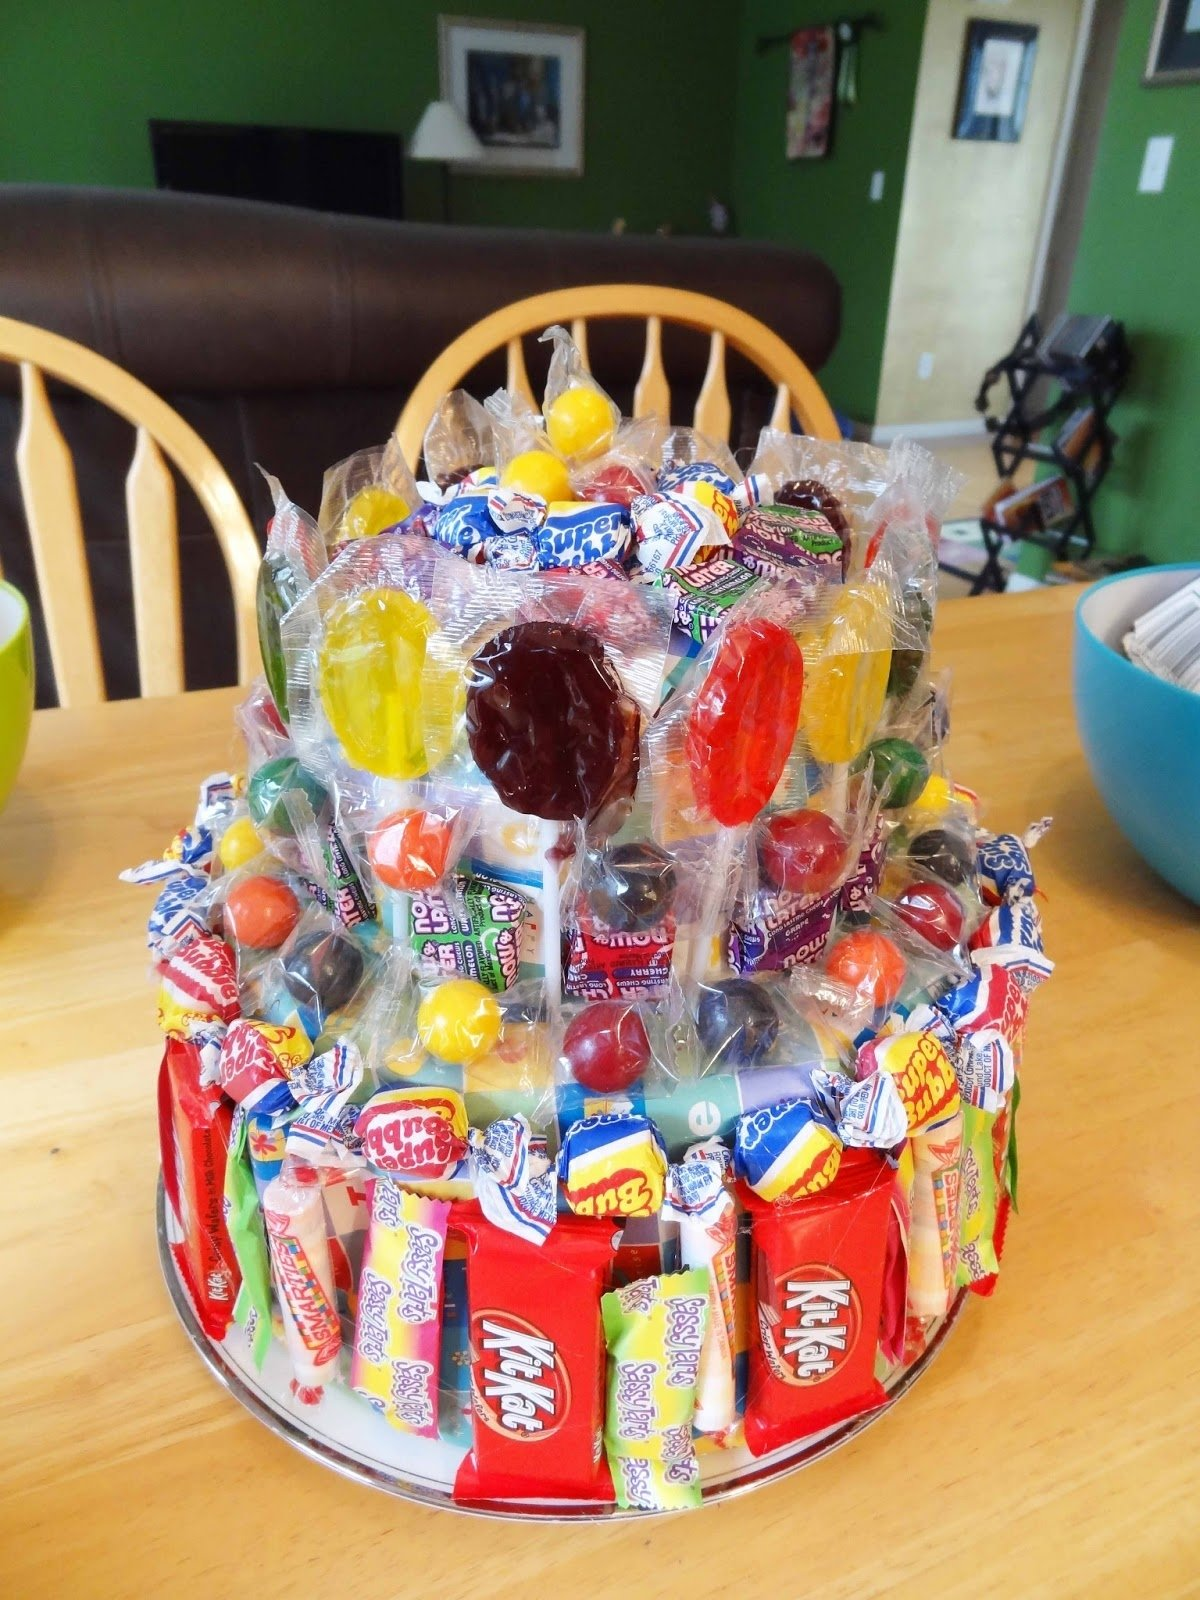 10 Gorgeous Birthday Party Ideas For 14 Year Old Girls teen birthday party crafty leslies blog 2 2021